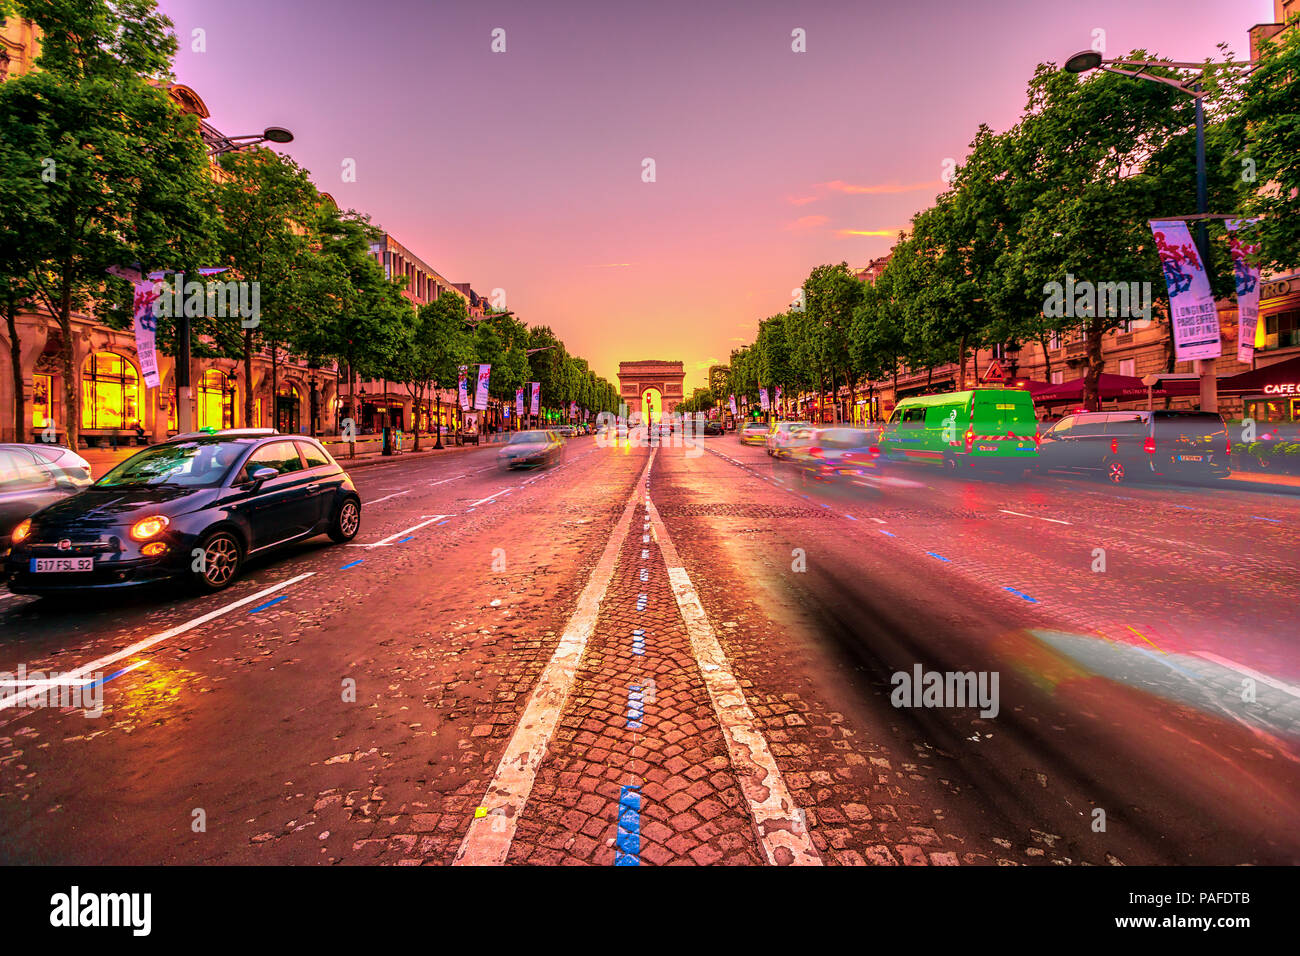 Paris, France - July 2, 2017: speed effect of the cars on the Champs Elysees with the iconic Arc de Triomphe in the distance at twilight. Arch of Triumph in a colorful sunset sky. - Stock Image